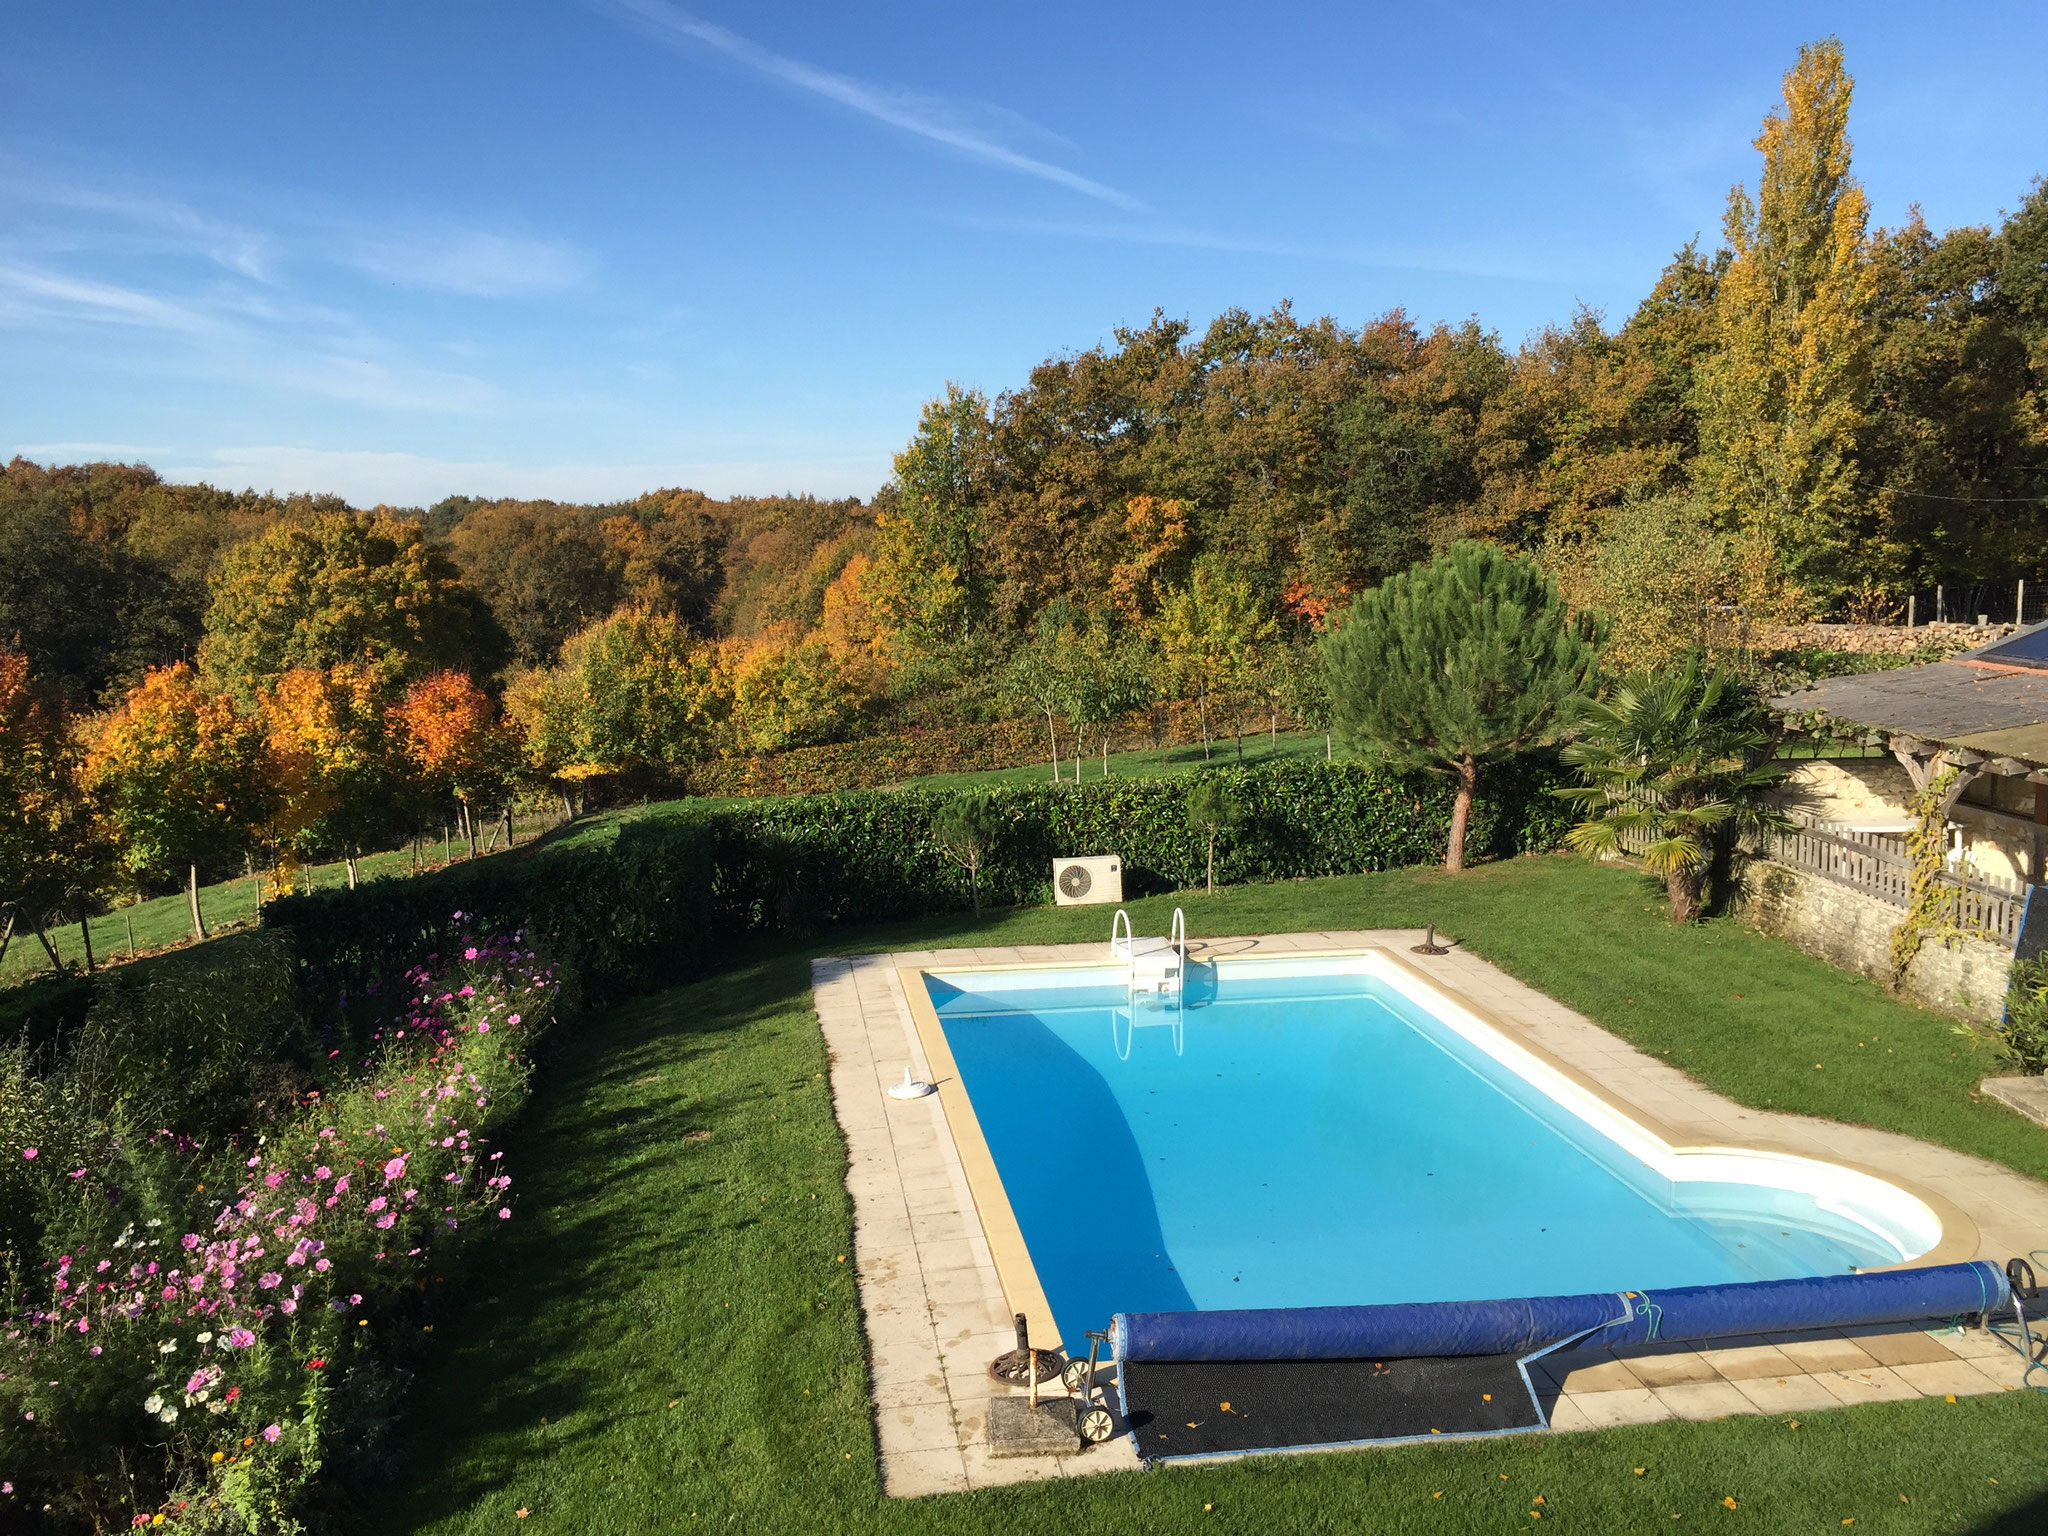 Gîte poolside view with Autumn colors